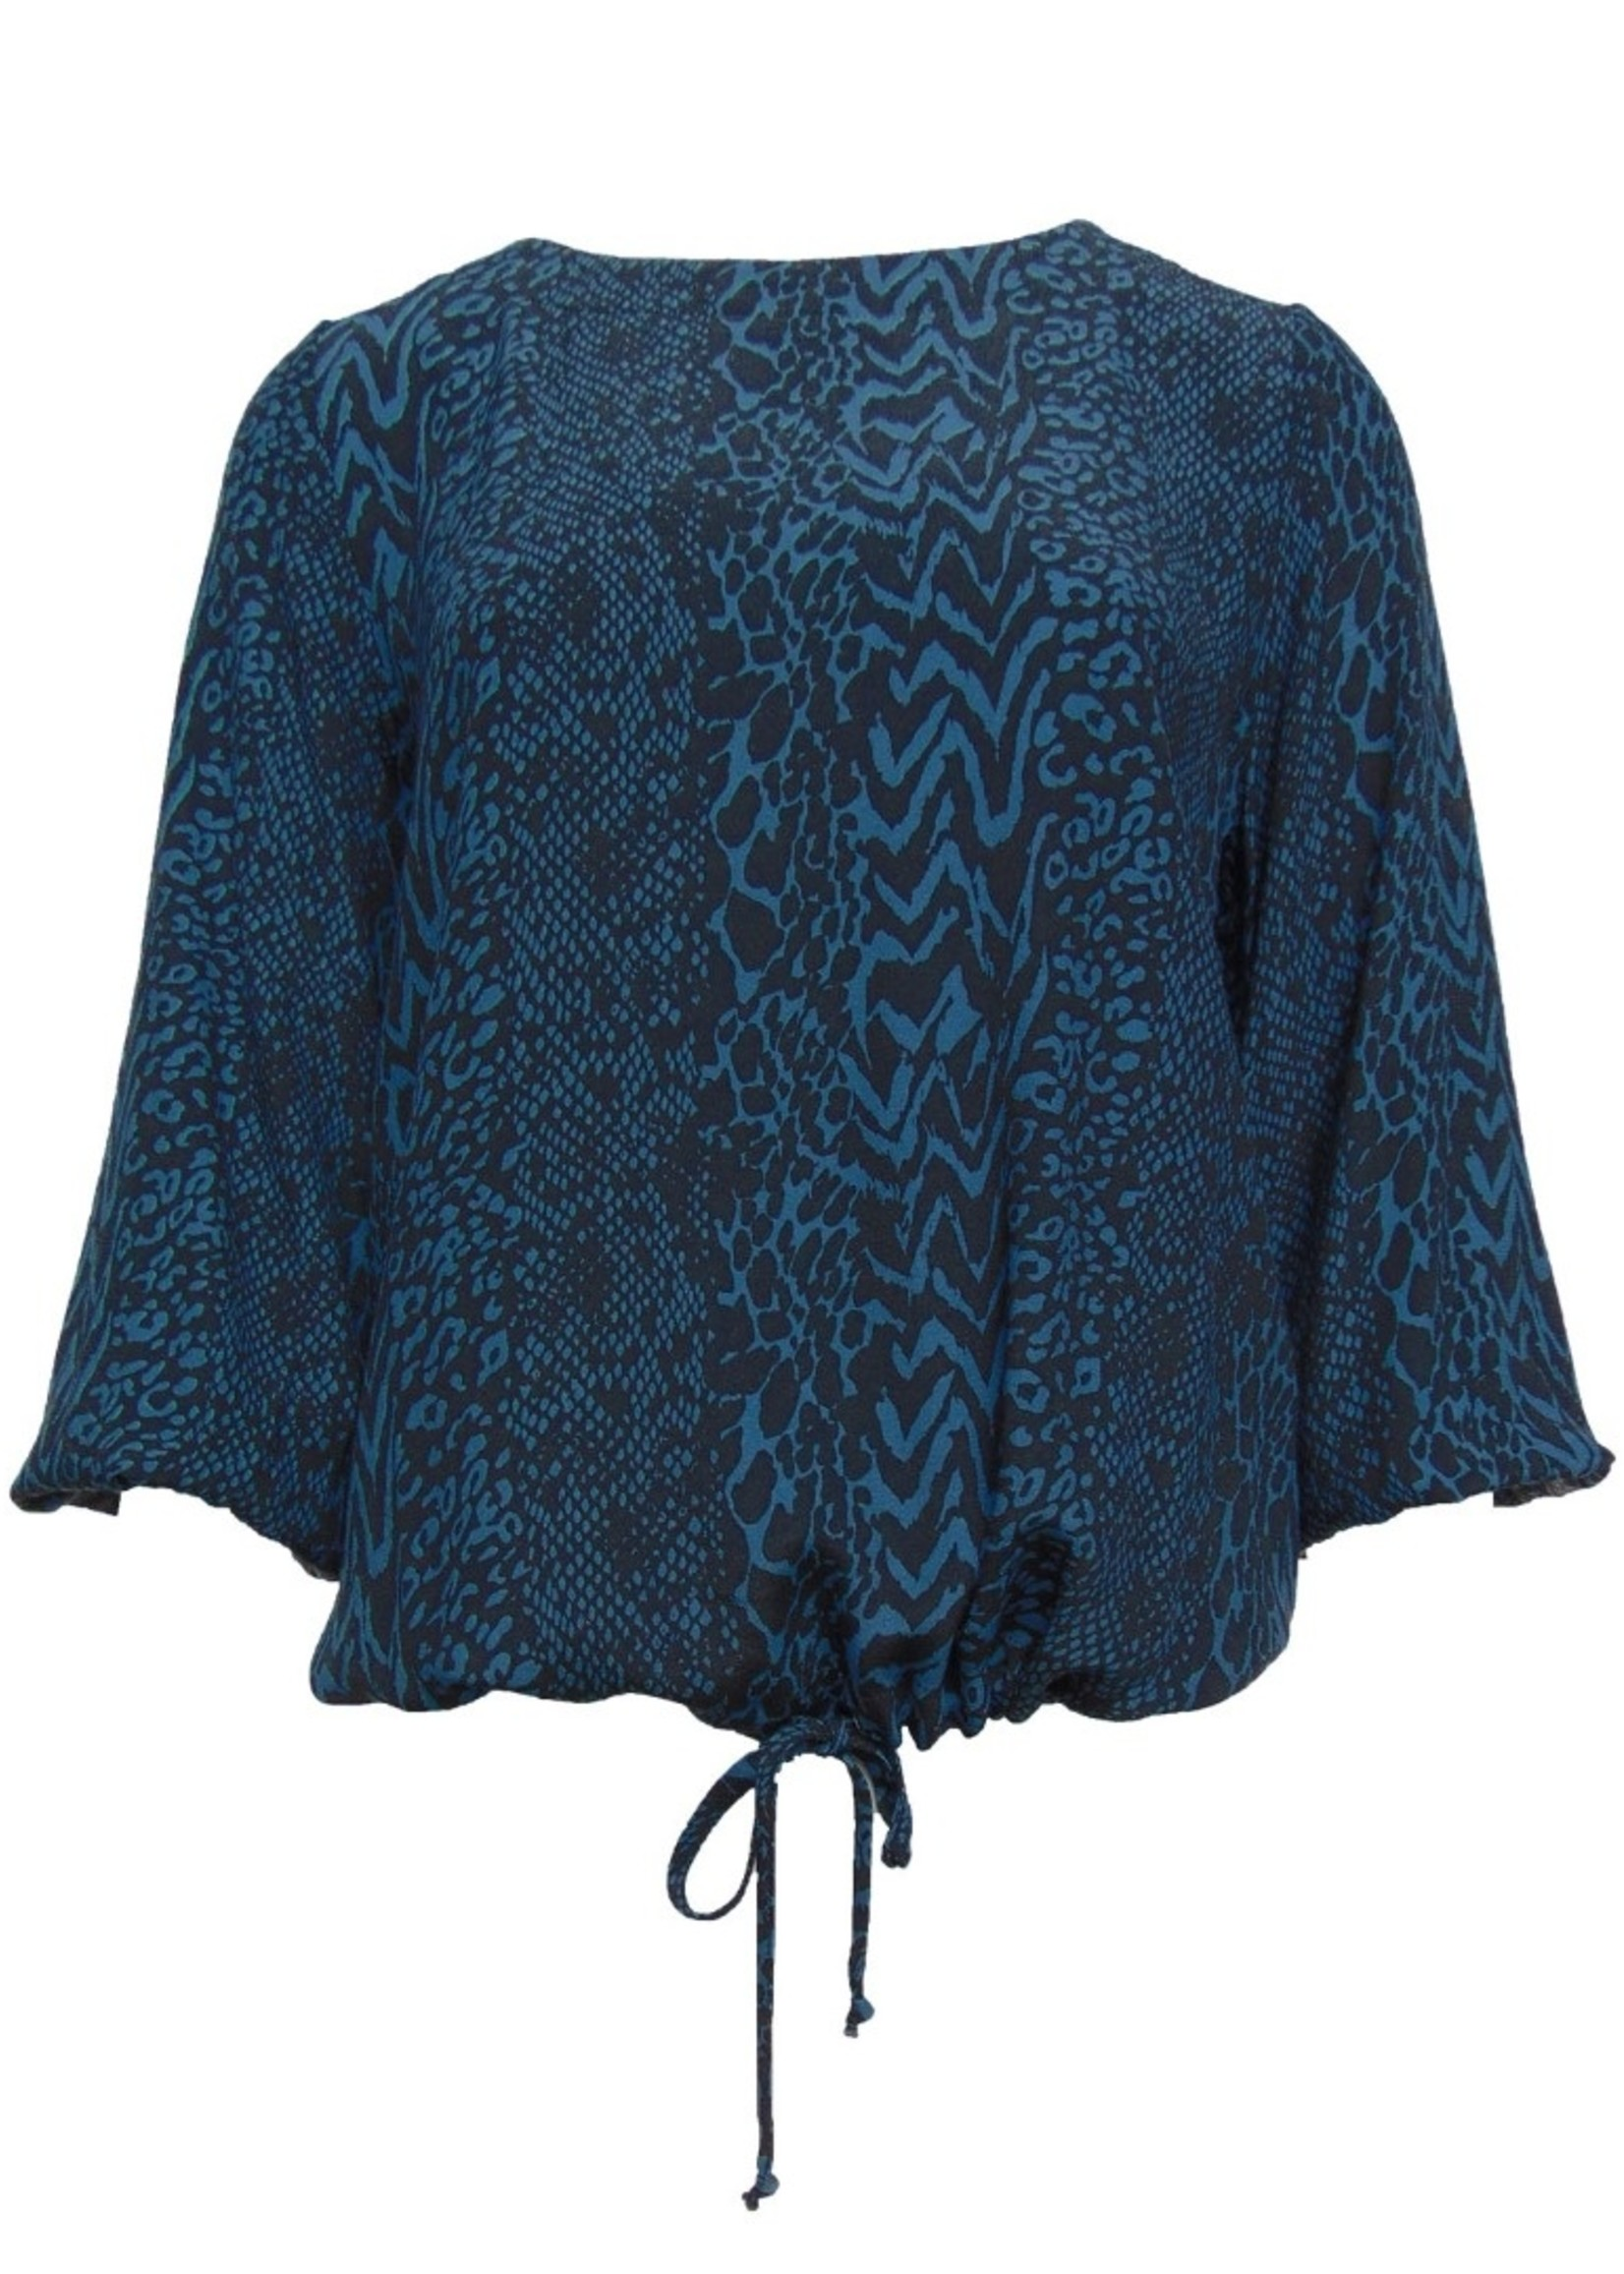 Elvira Collections Elvira Collections Lianne Blouse